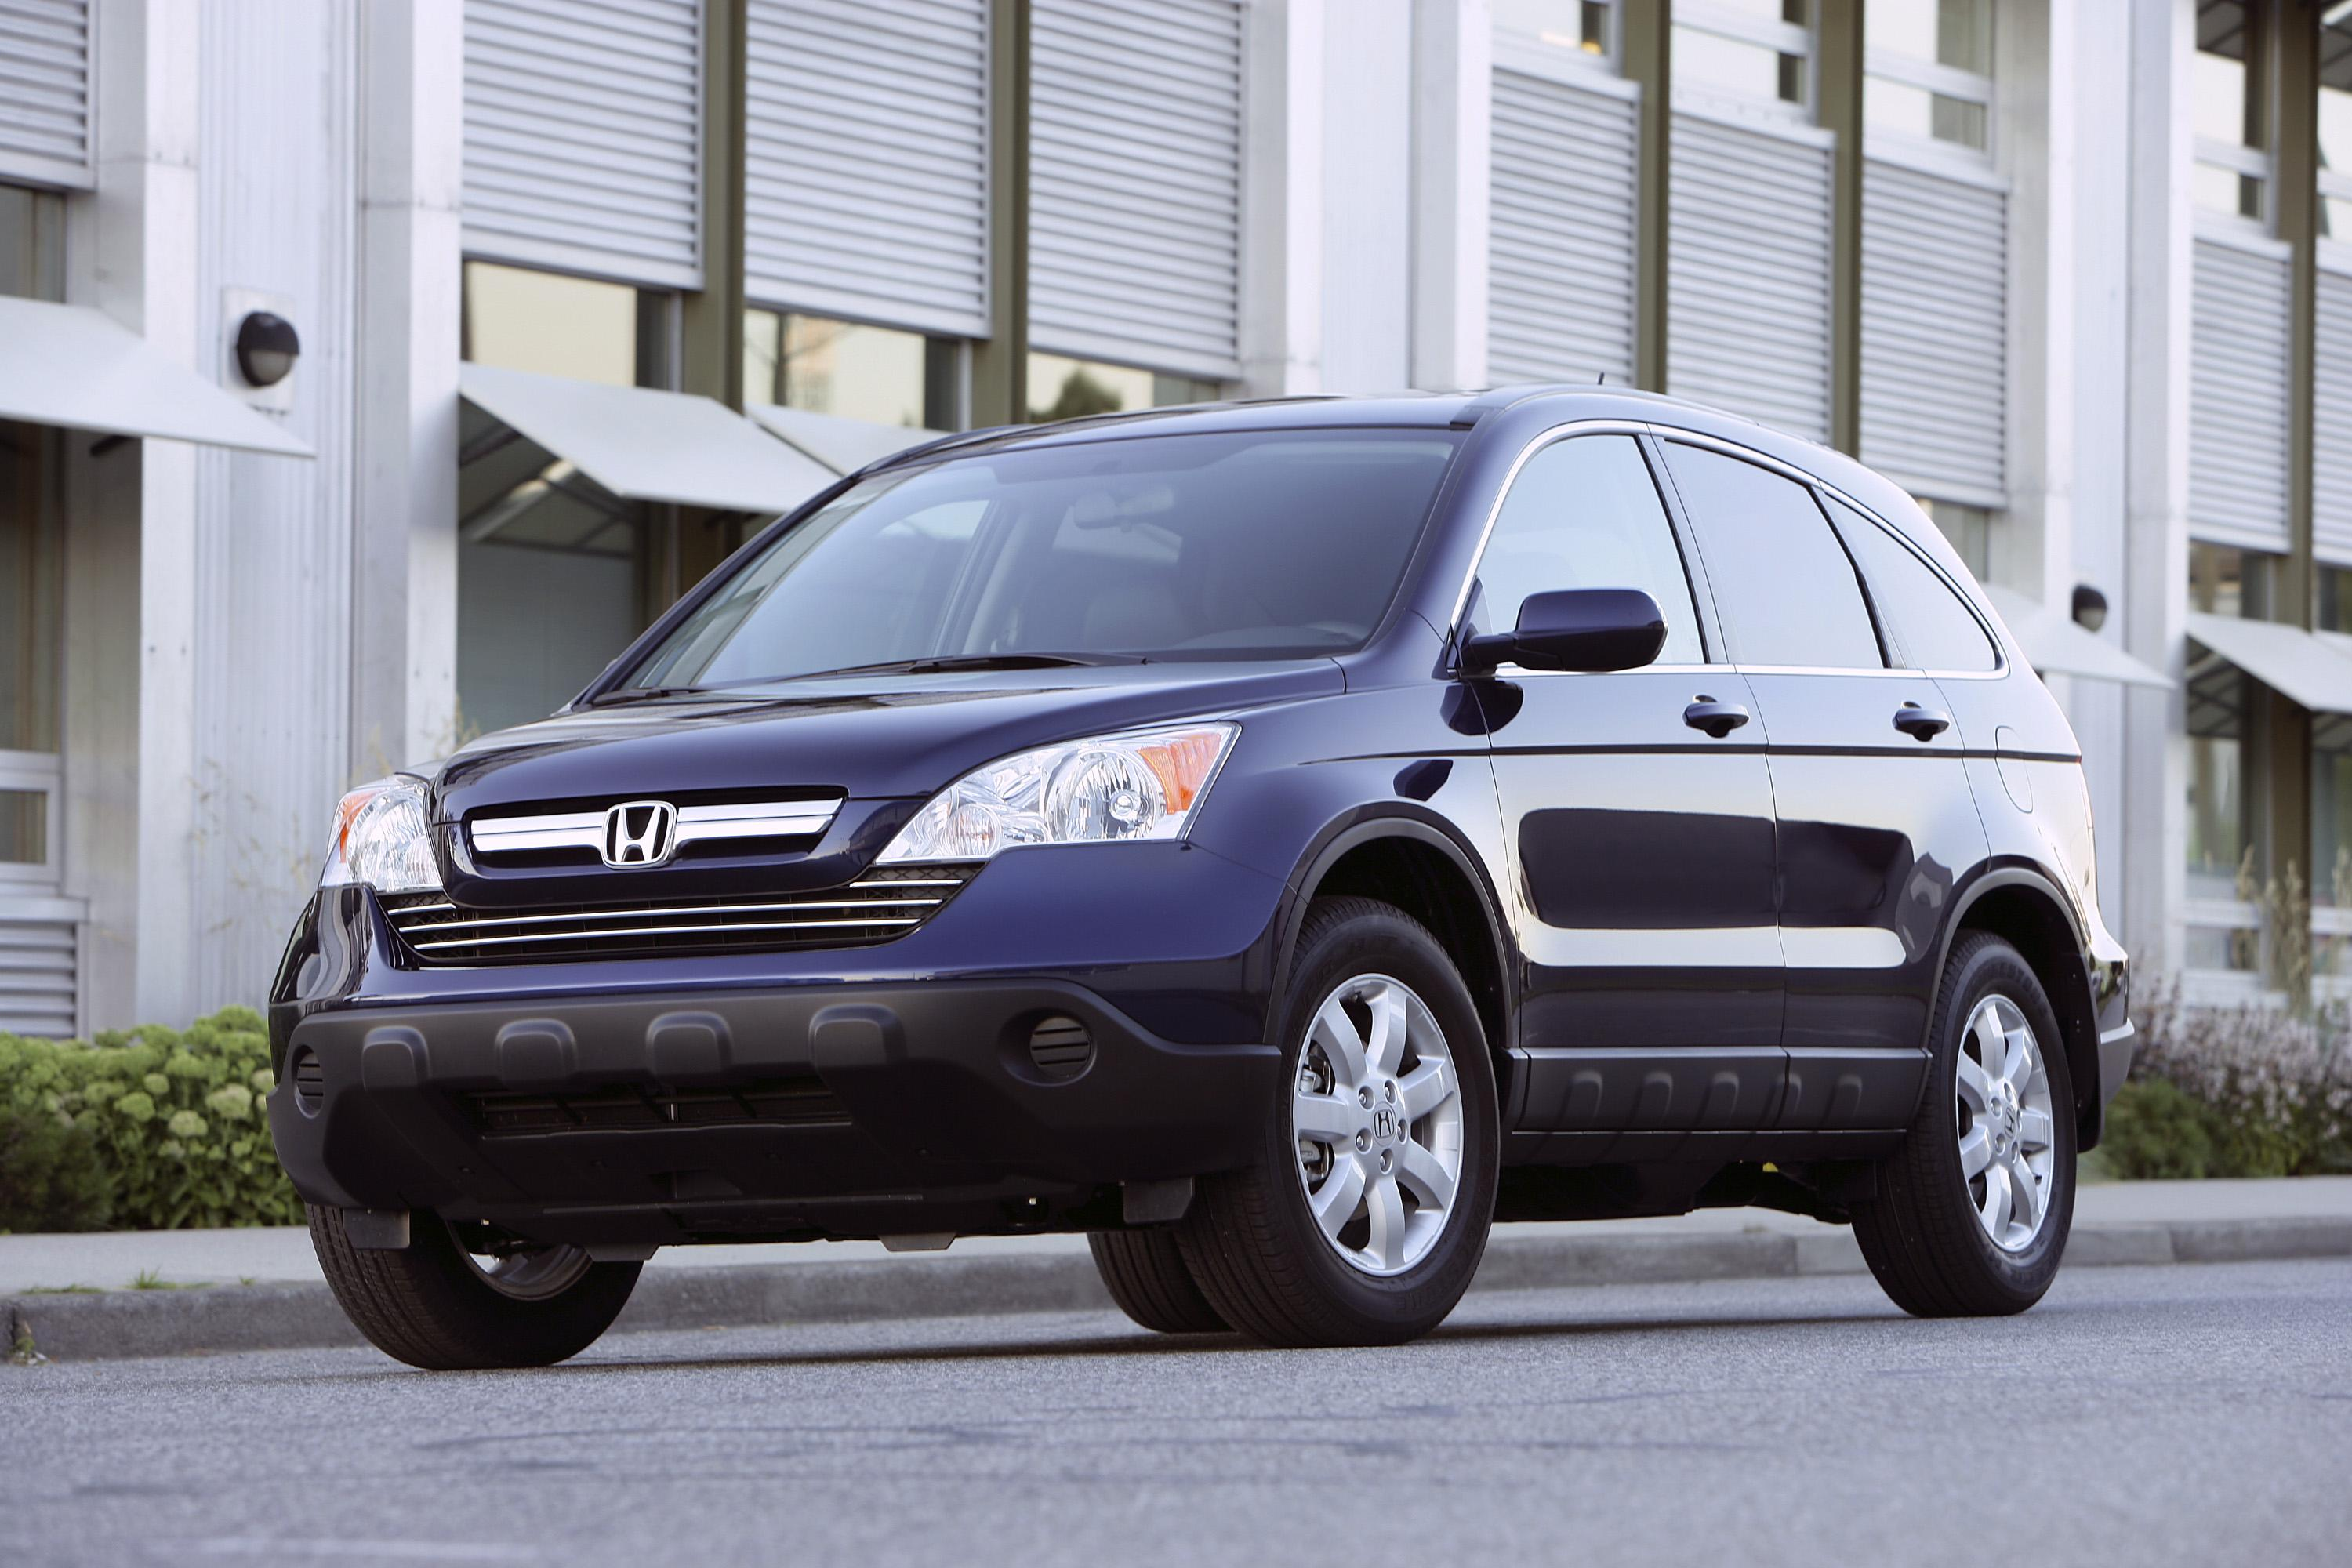 2008 honda crv consumer reviews